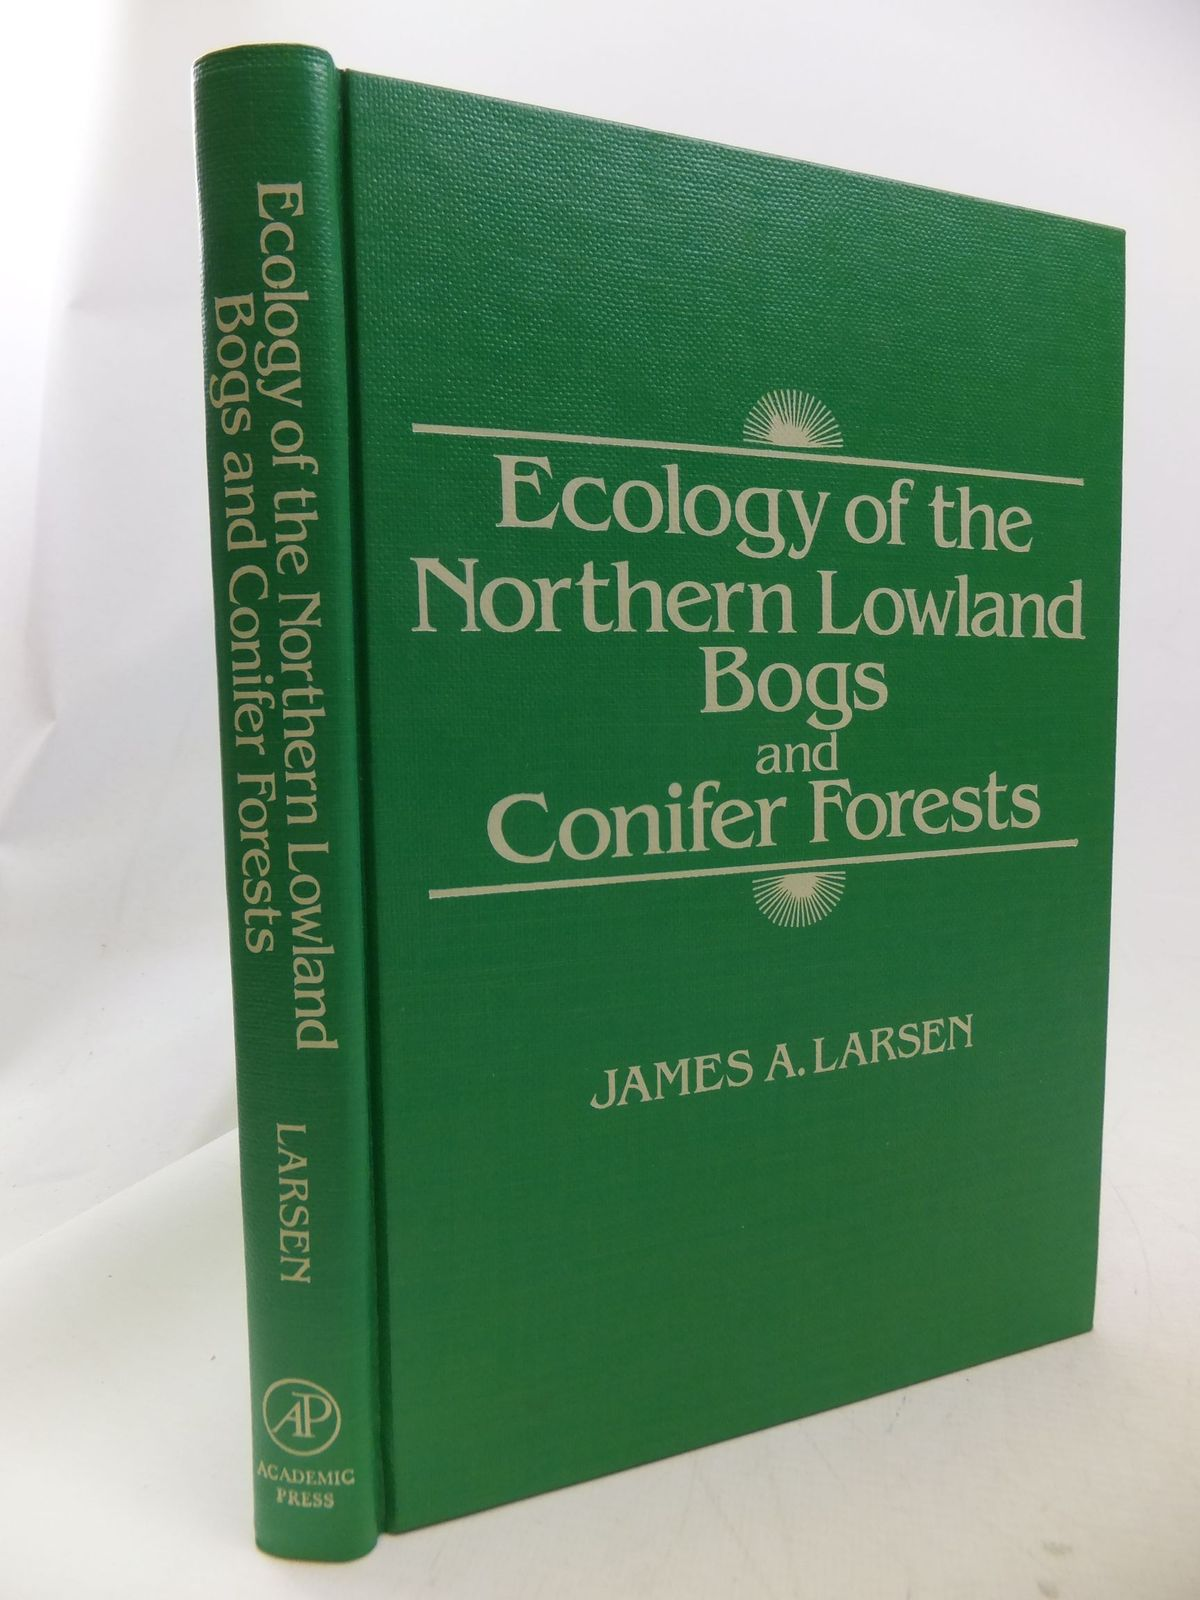 Photo of ECOLOGY OF THE NORTHERN LOWLAND BOGS AND CONIFER FORESTS written by Larsen, James A. published by Academic Press (STOCK CODE: 1710823)  for sale by Stella & Rose's Books